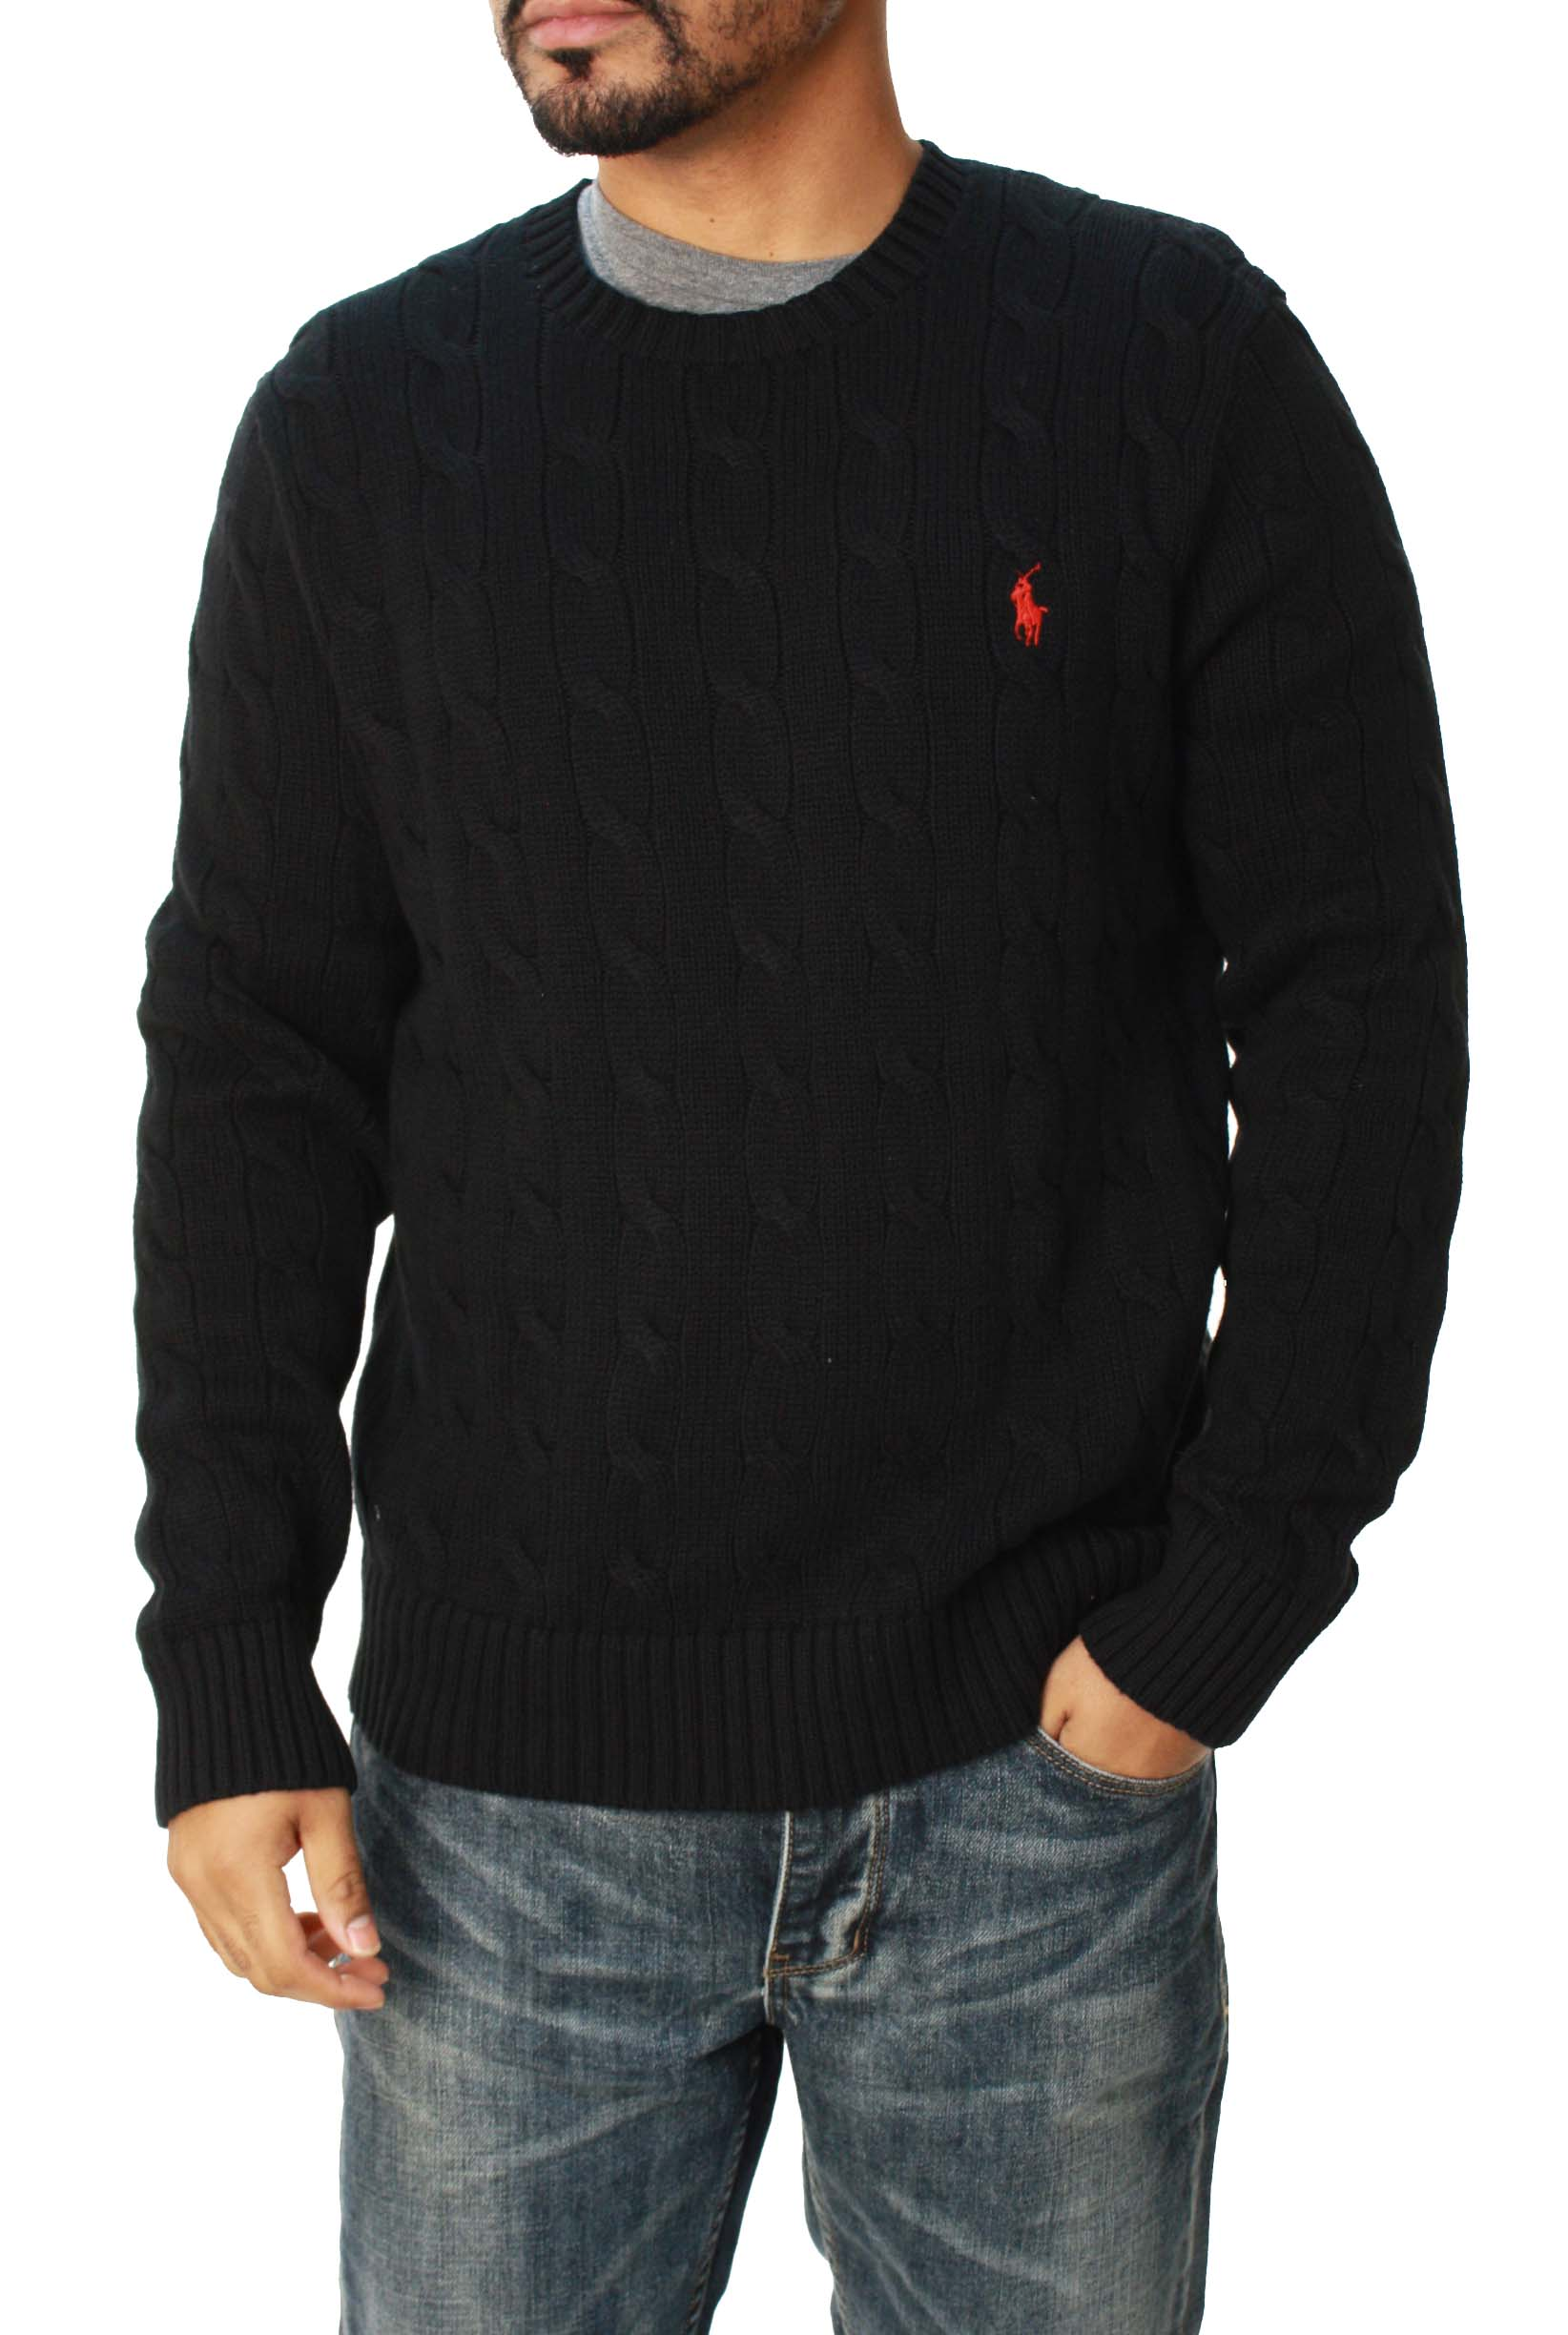 Ralph Lauren Polo  Men's Pullover Cable Knit Sweater at Sears.com